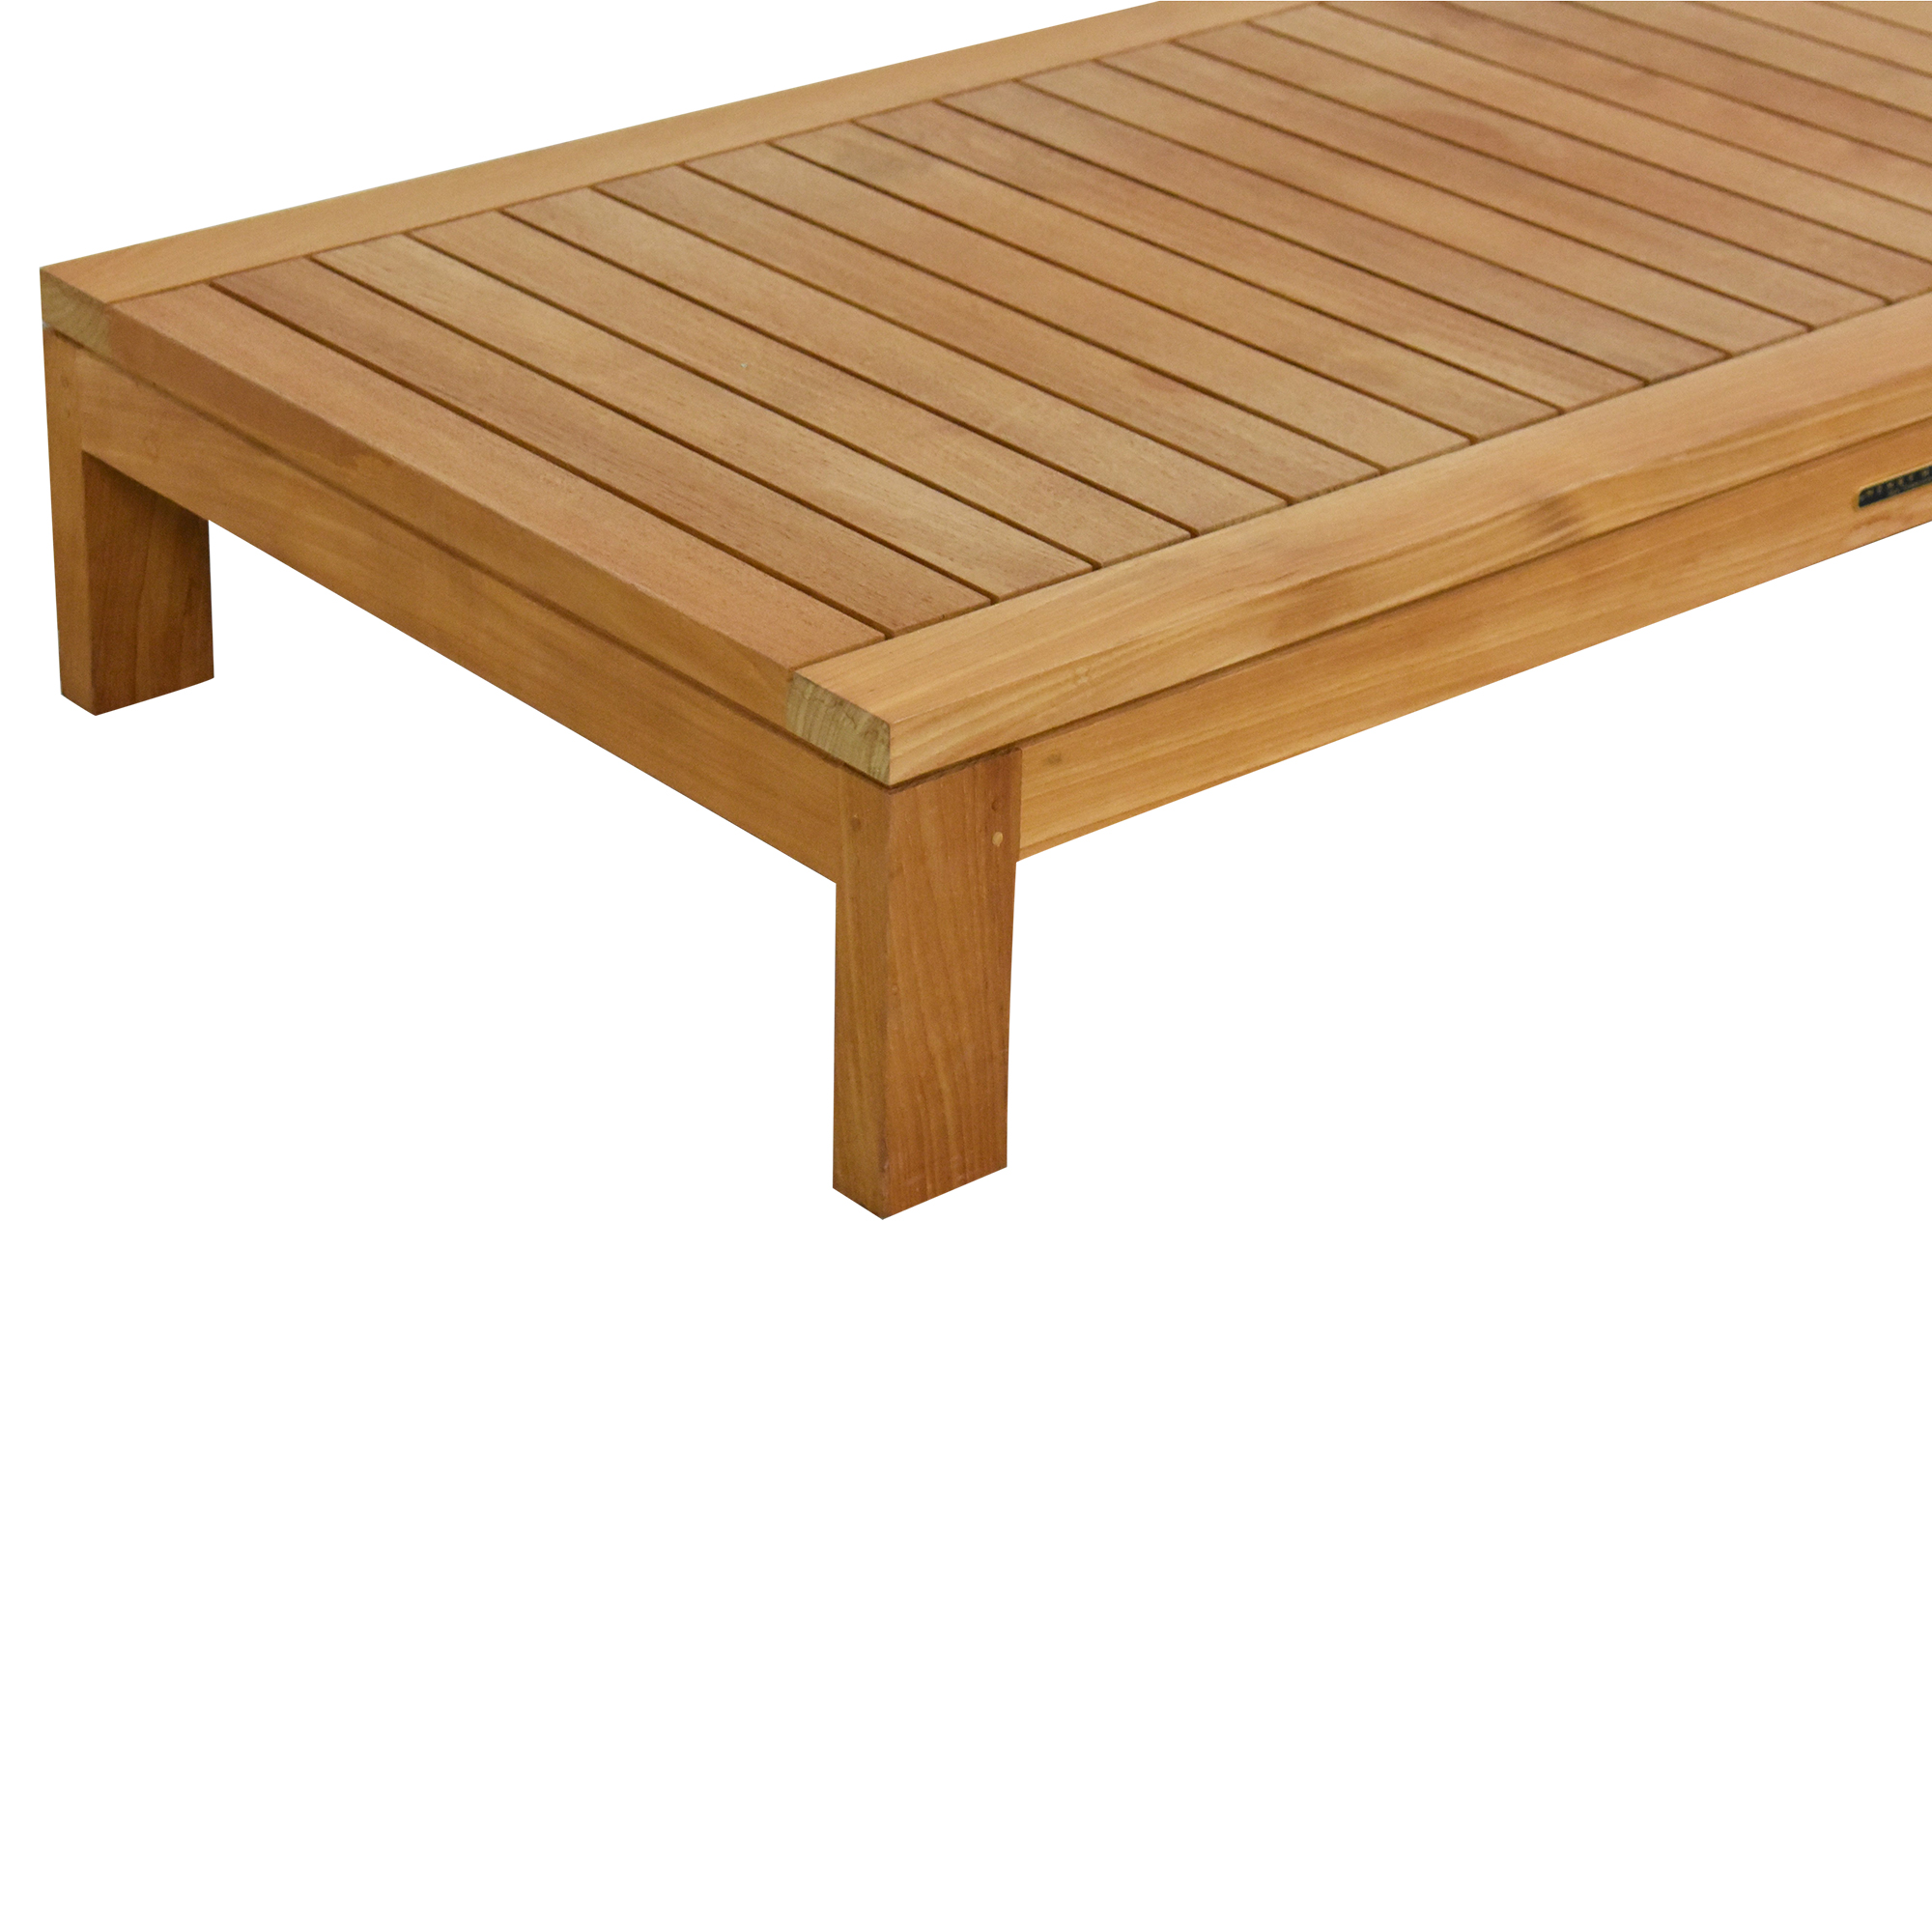 Henry Hall Designs Henry Hall Designs Tru Pure Coffee Table for sale